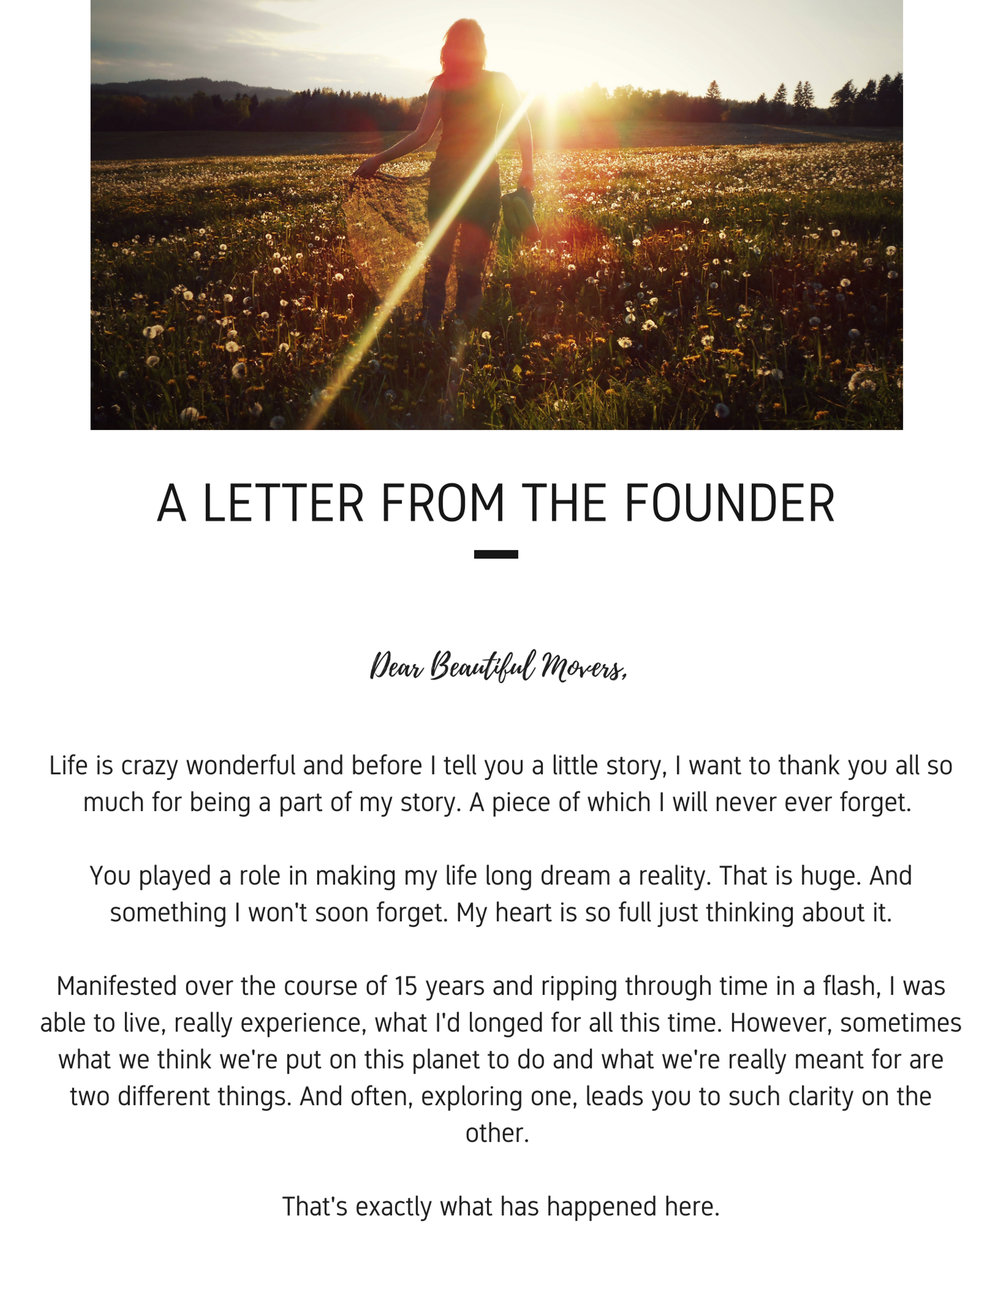 a letter from the founder1of3.jpg